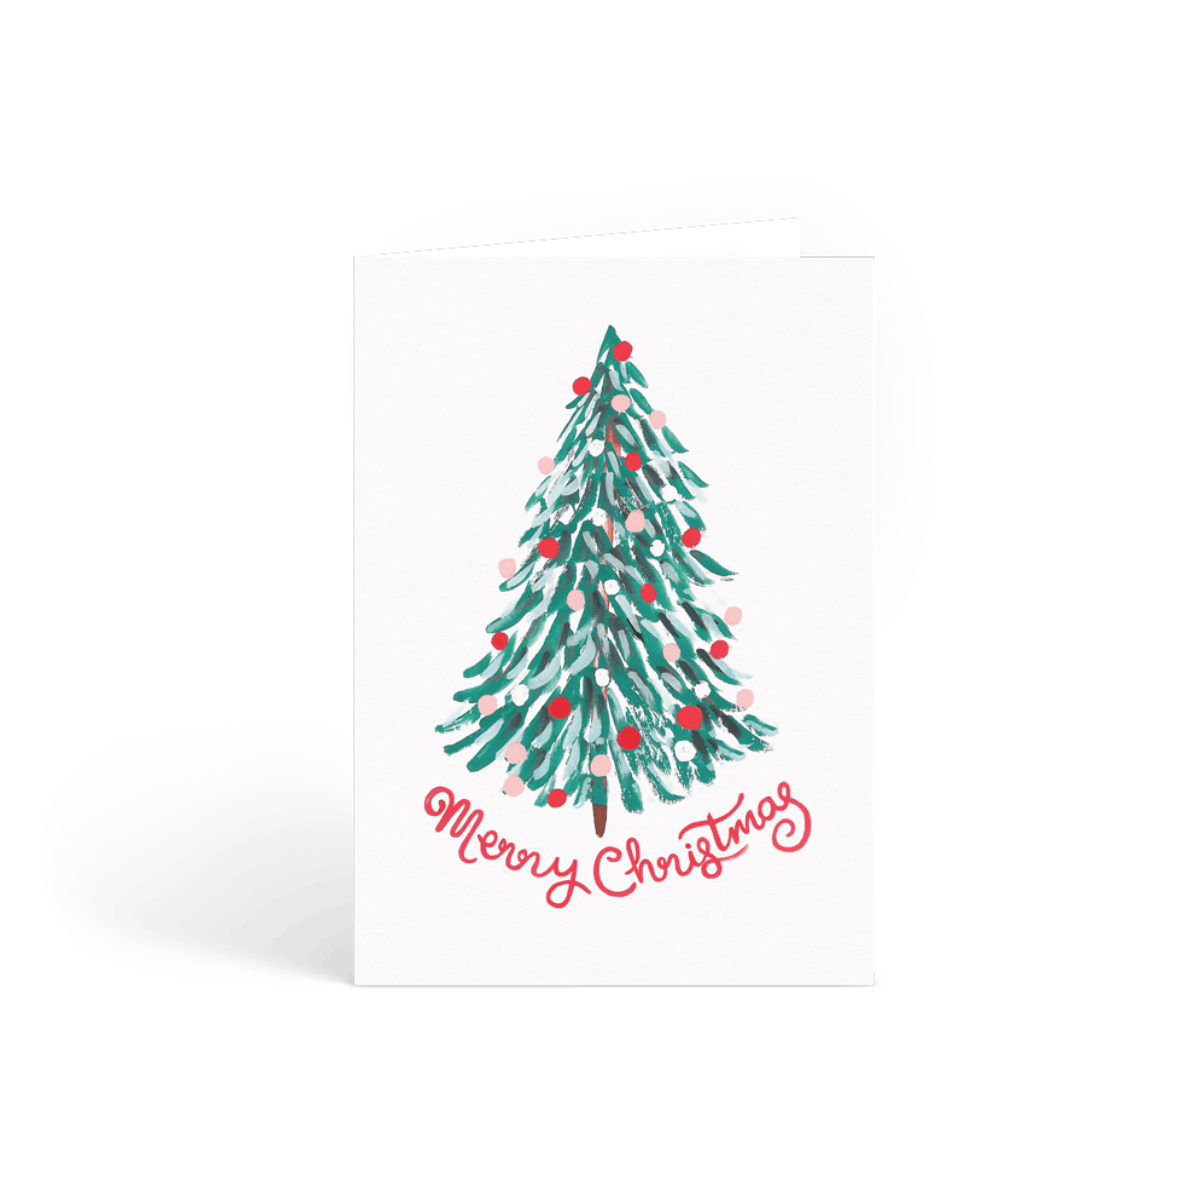 Https%3a%2f%2fwww.papier.com%2fproduct image%2f24896%2f2%2fmerry christmas tree 6210 front 1498658489.png?ixlib=rb 1.1